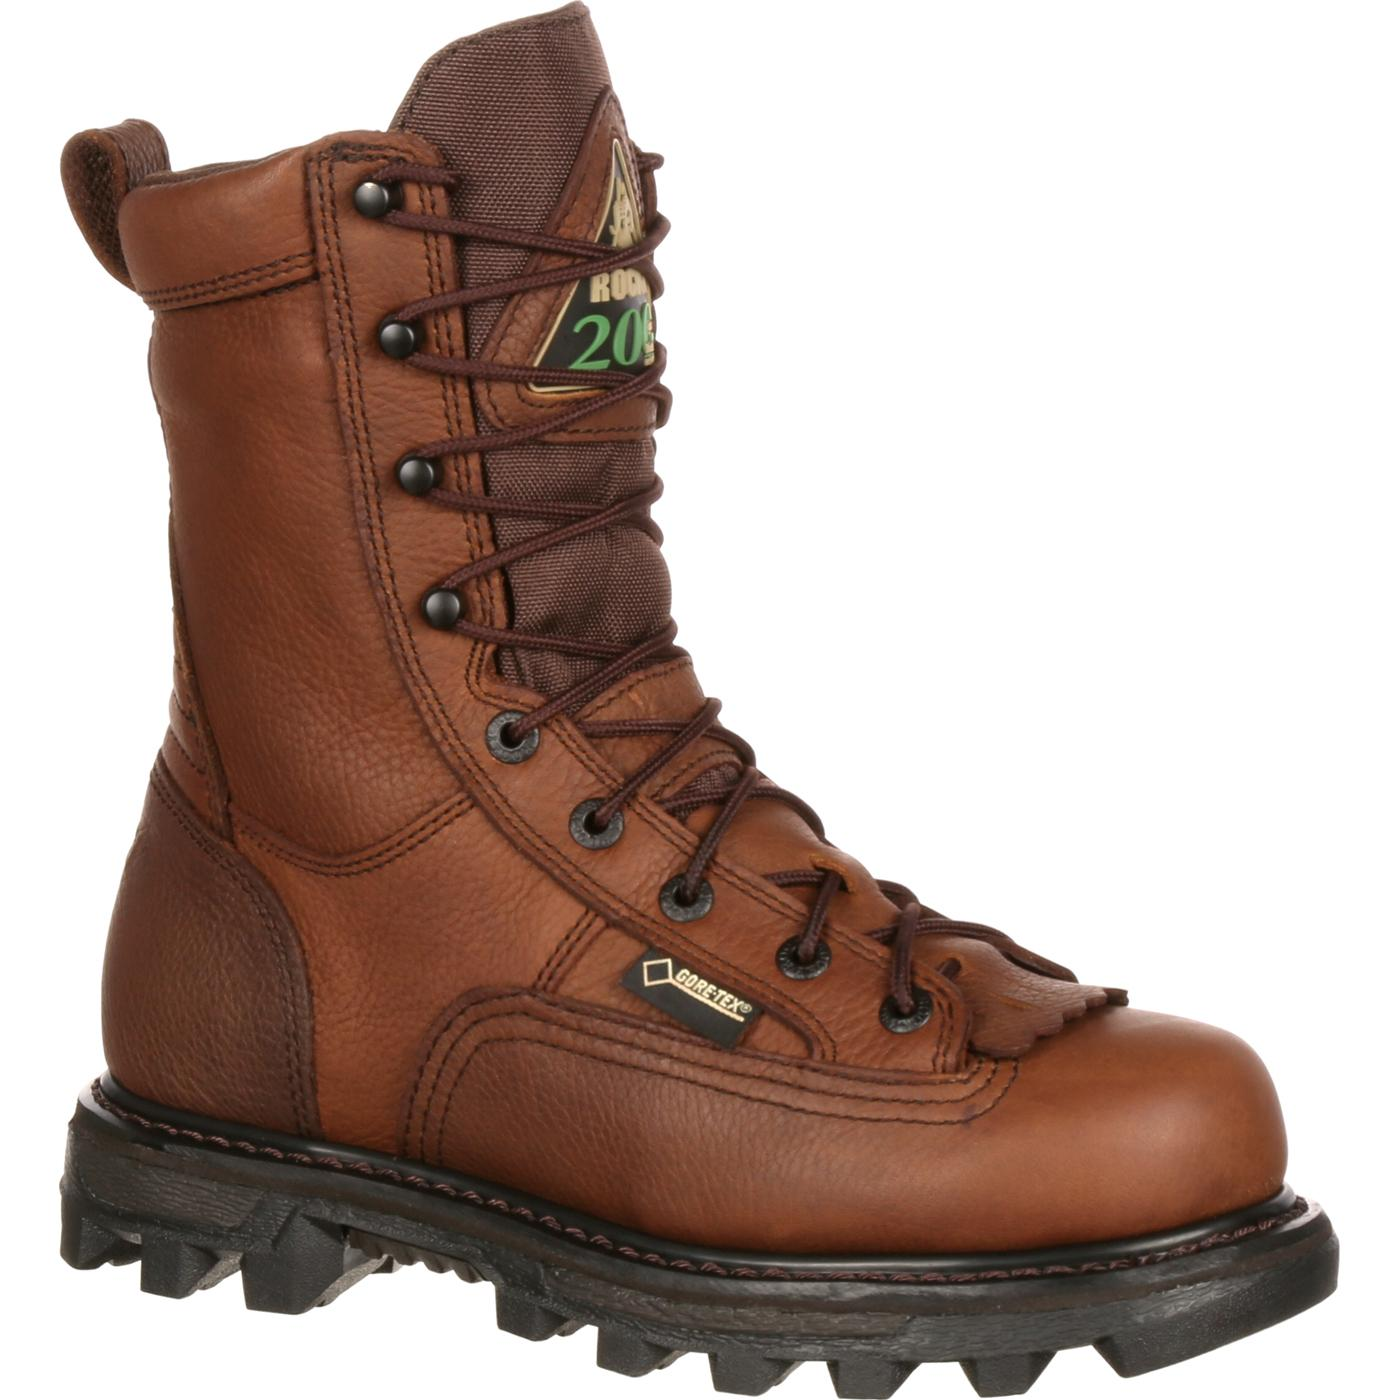 Rocky BearClaw 3D Insulated Waterproof Outdoor Boot, #9237